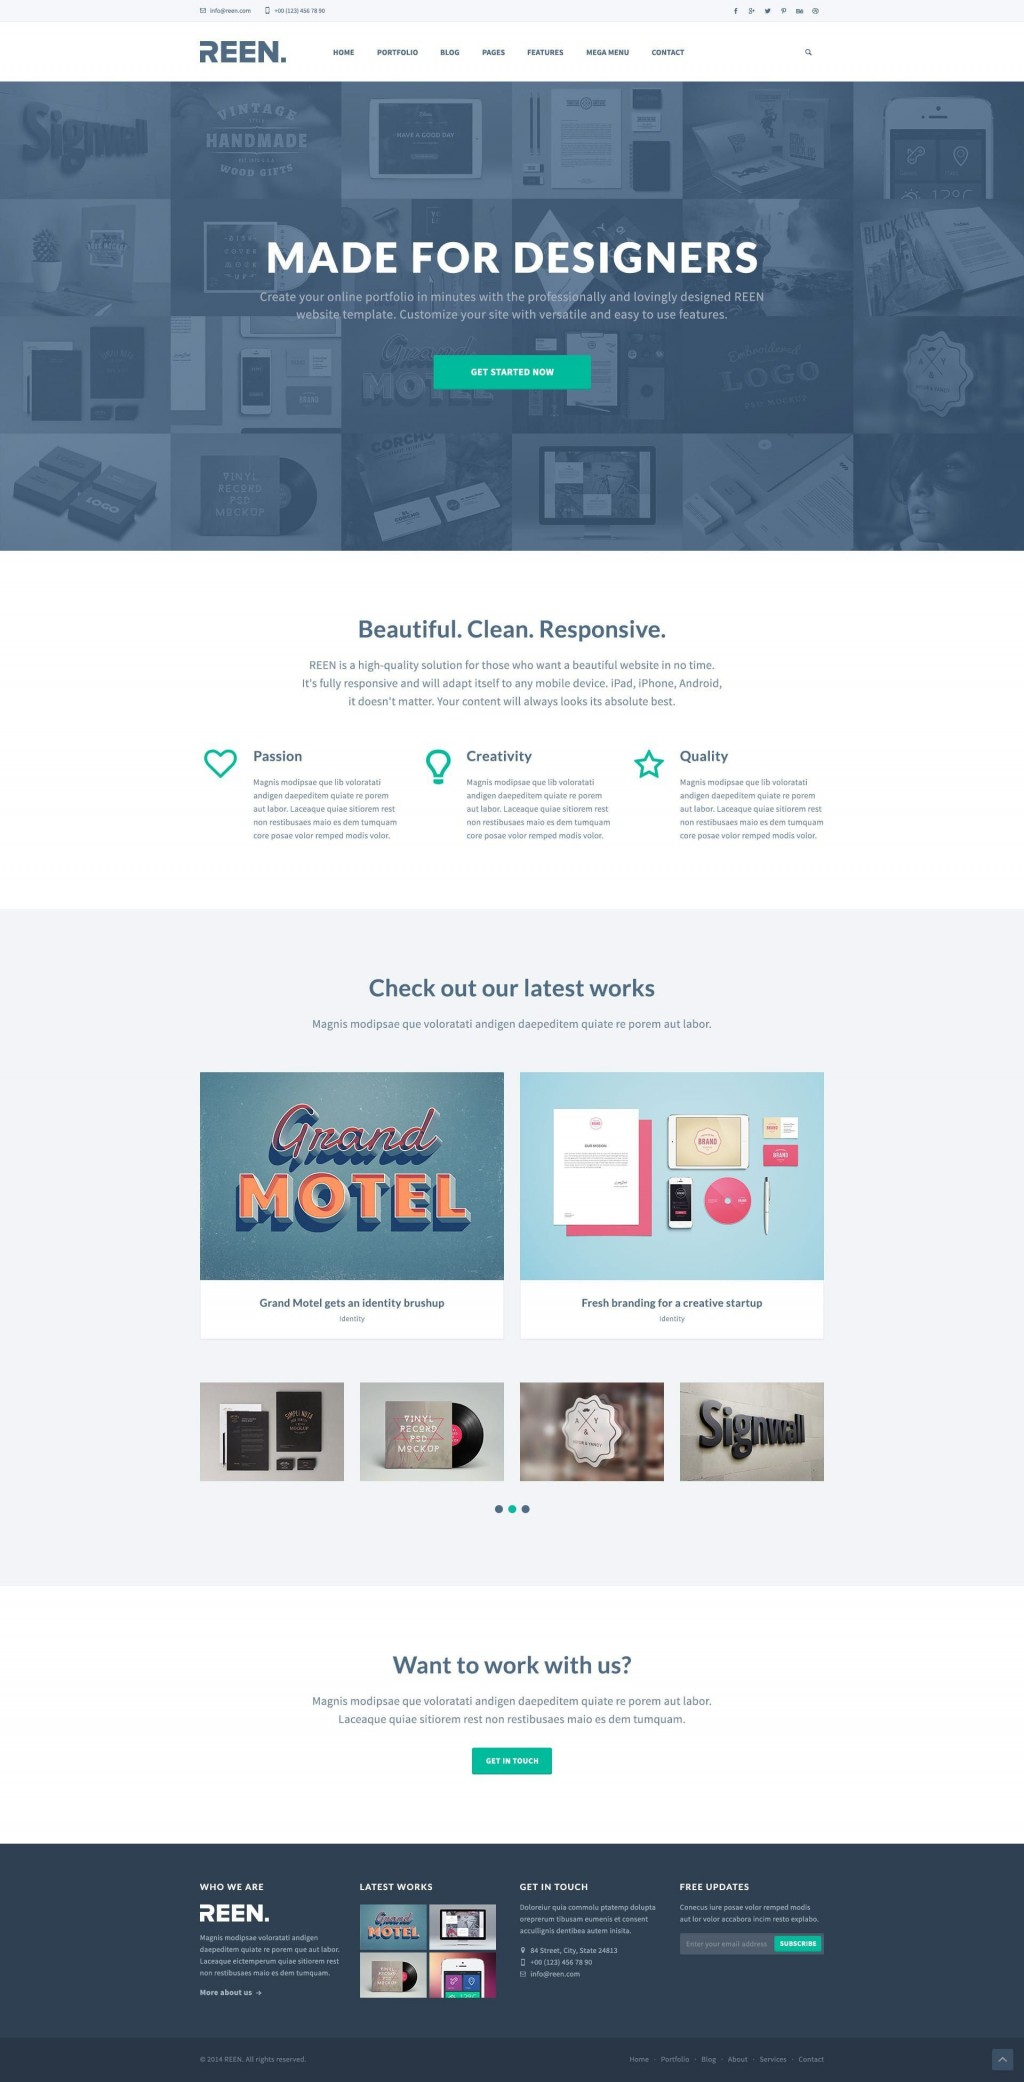 000 Amazing Website Template Html Free Download Inspiration  Indian School Software Company SpiceLarge